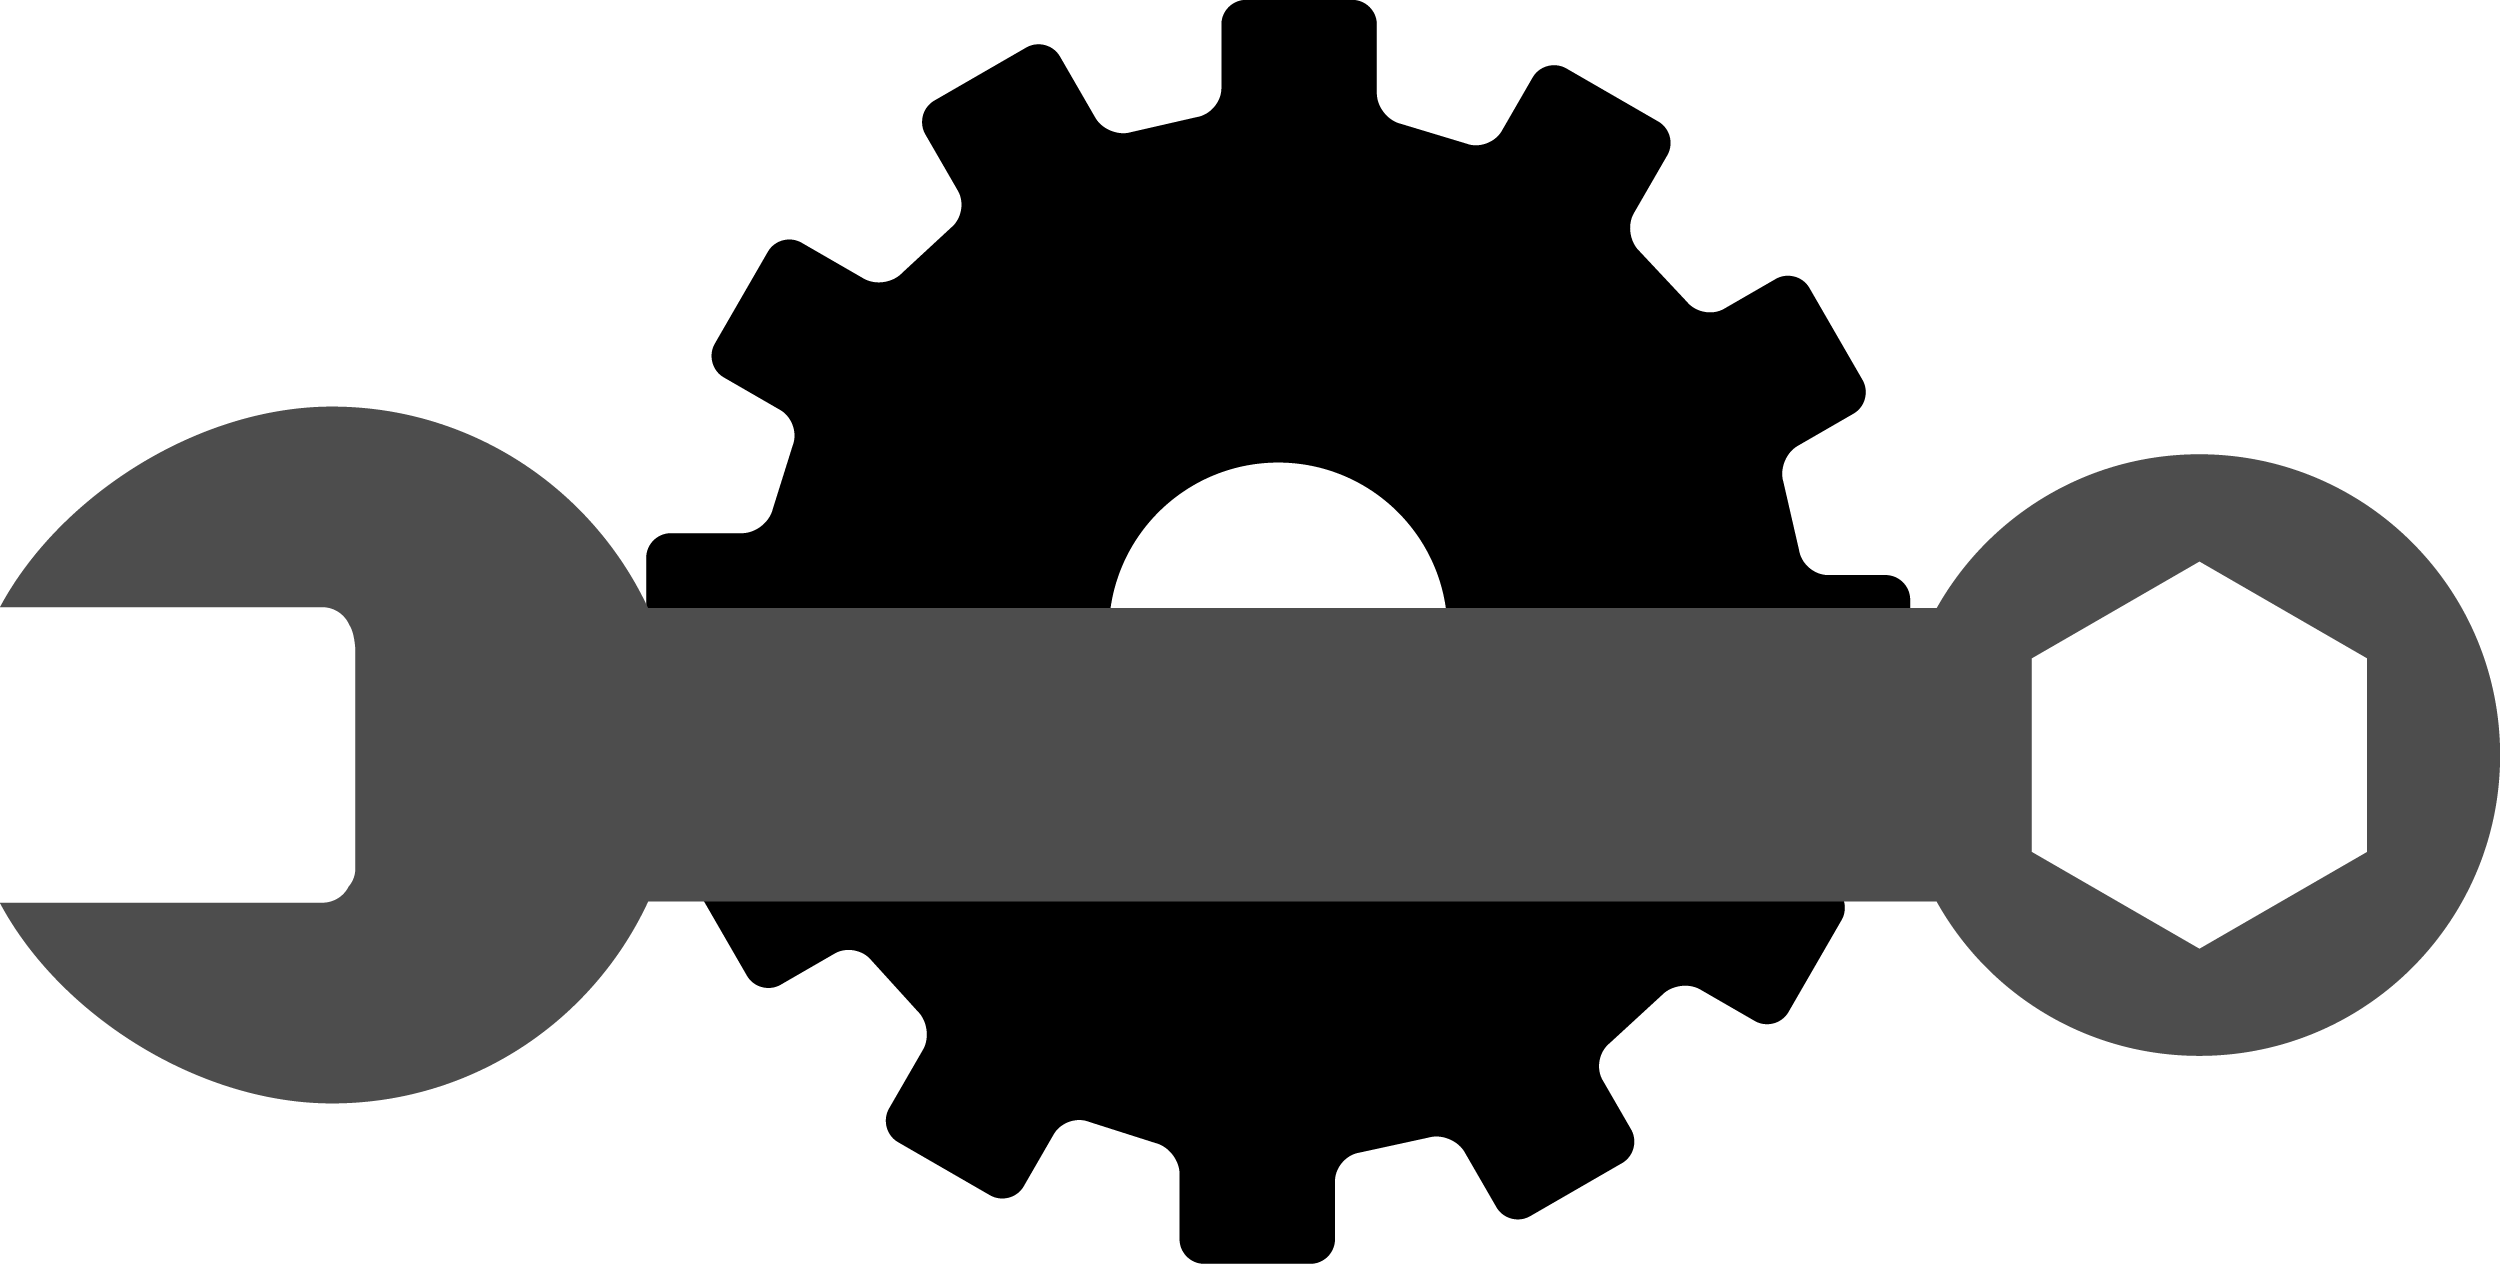 Gear and Wrench Logo PNG Clip-art